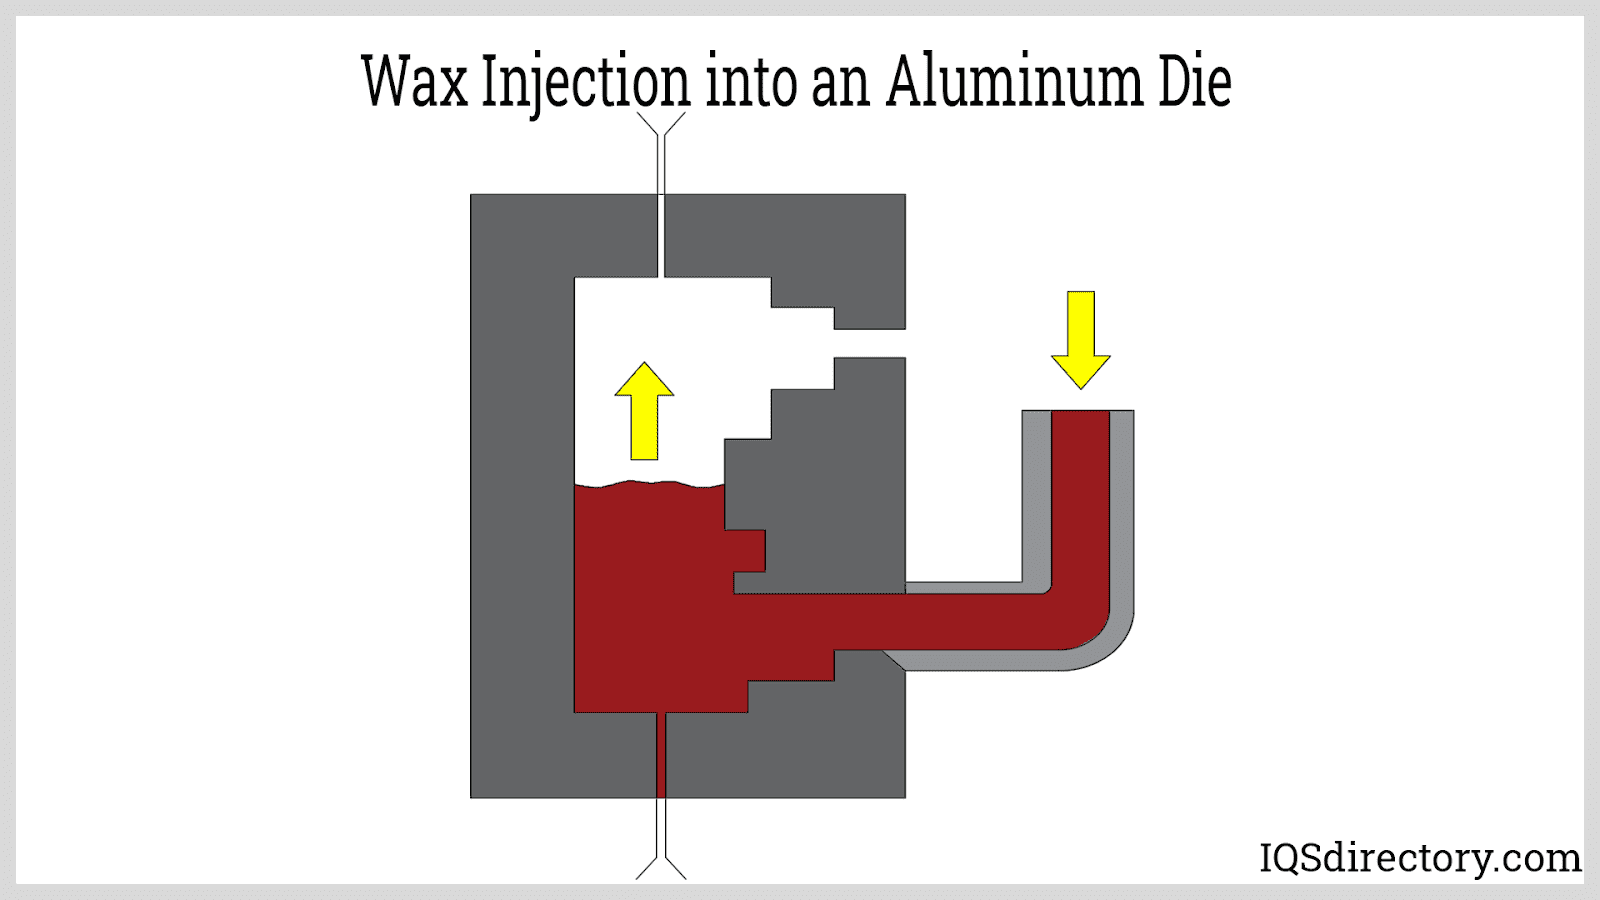 Wax Injection into an Aluminum Die